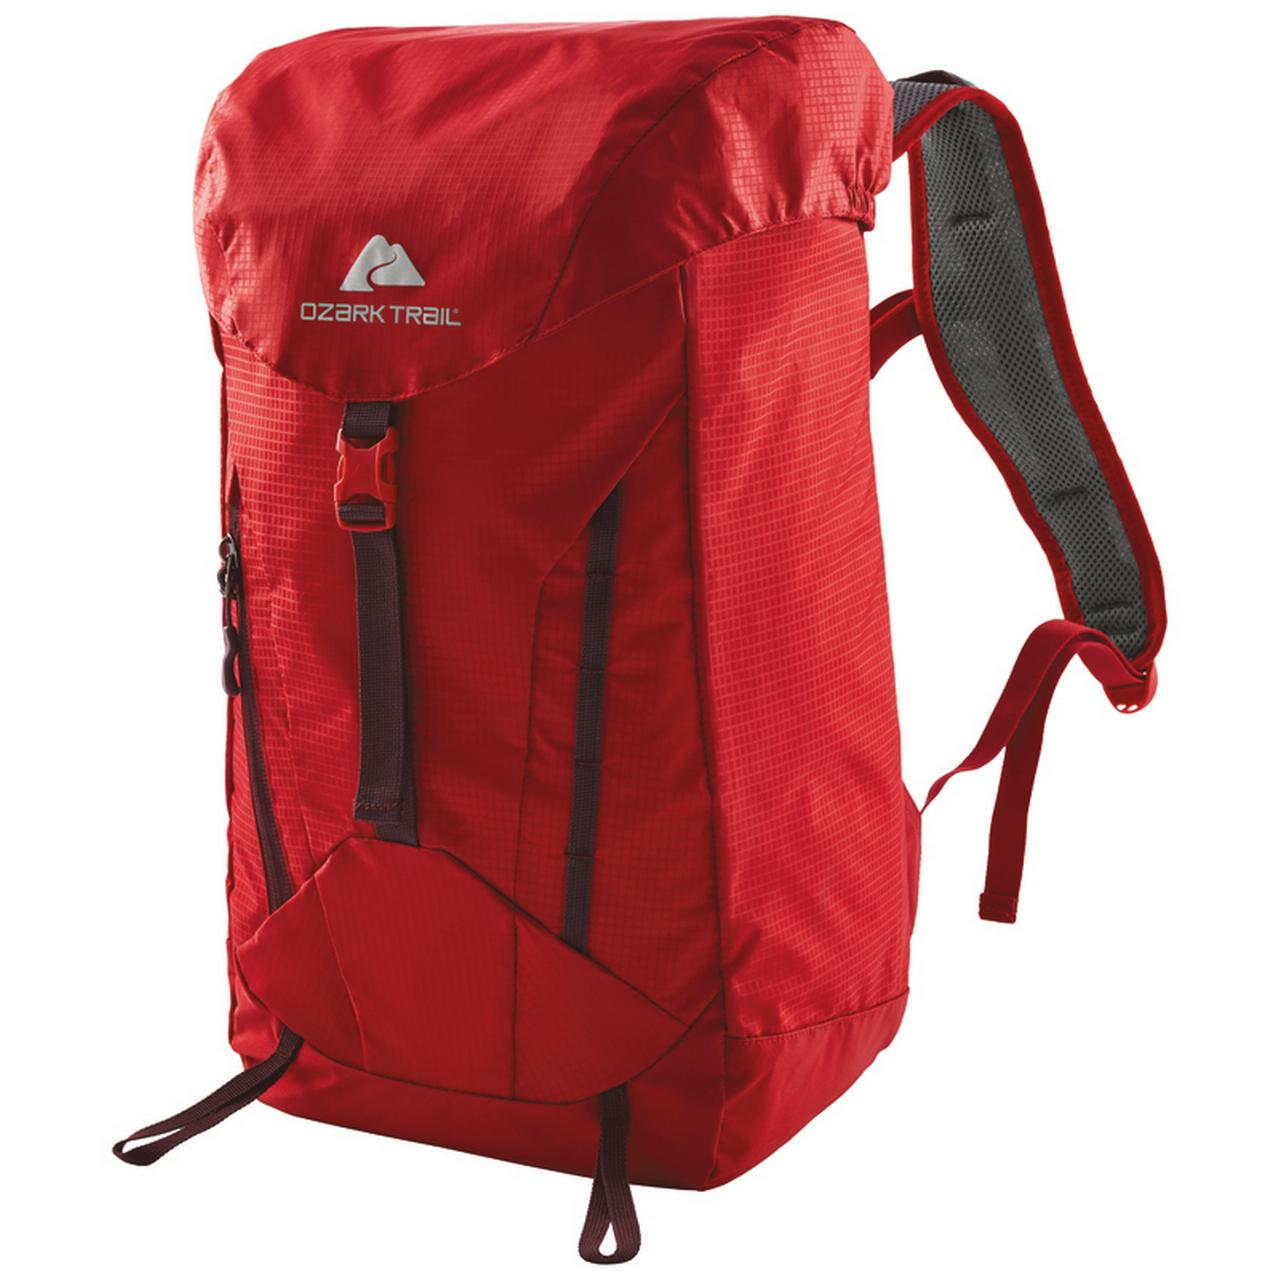 Ozark Trail 28L Atka Ultra lightweight Hydration-Compatible Backpack